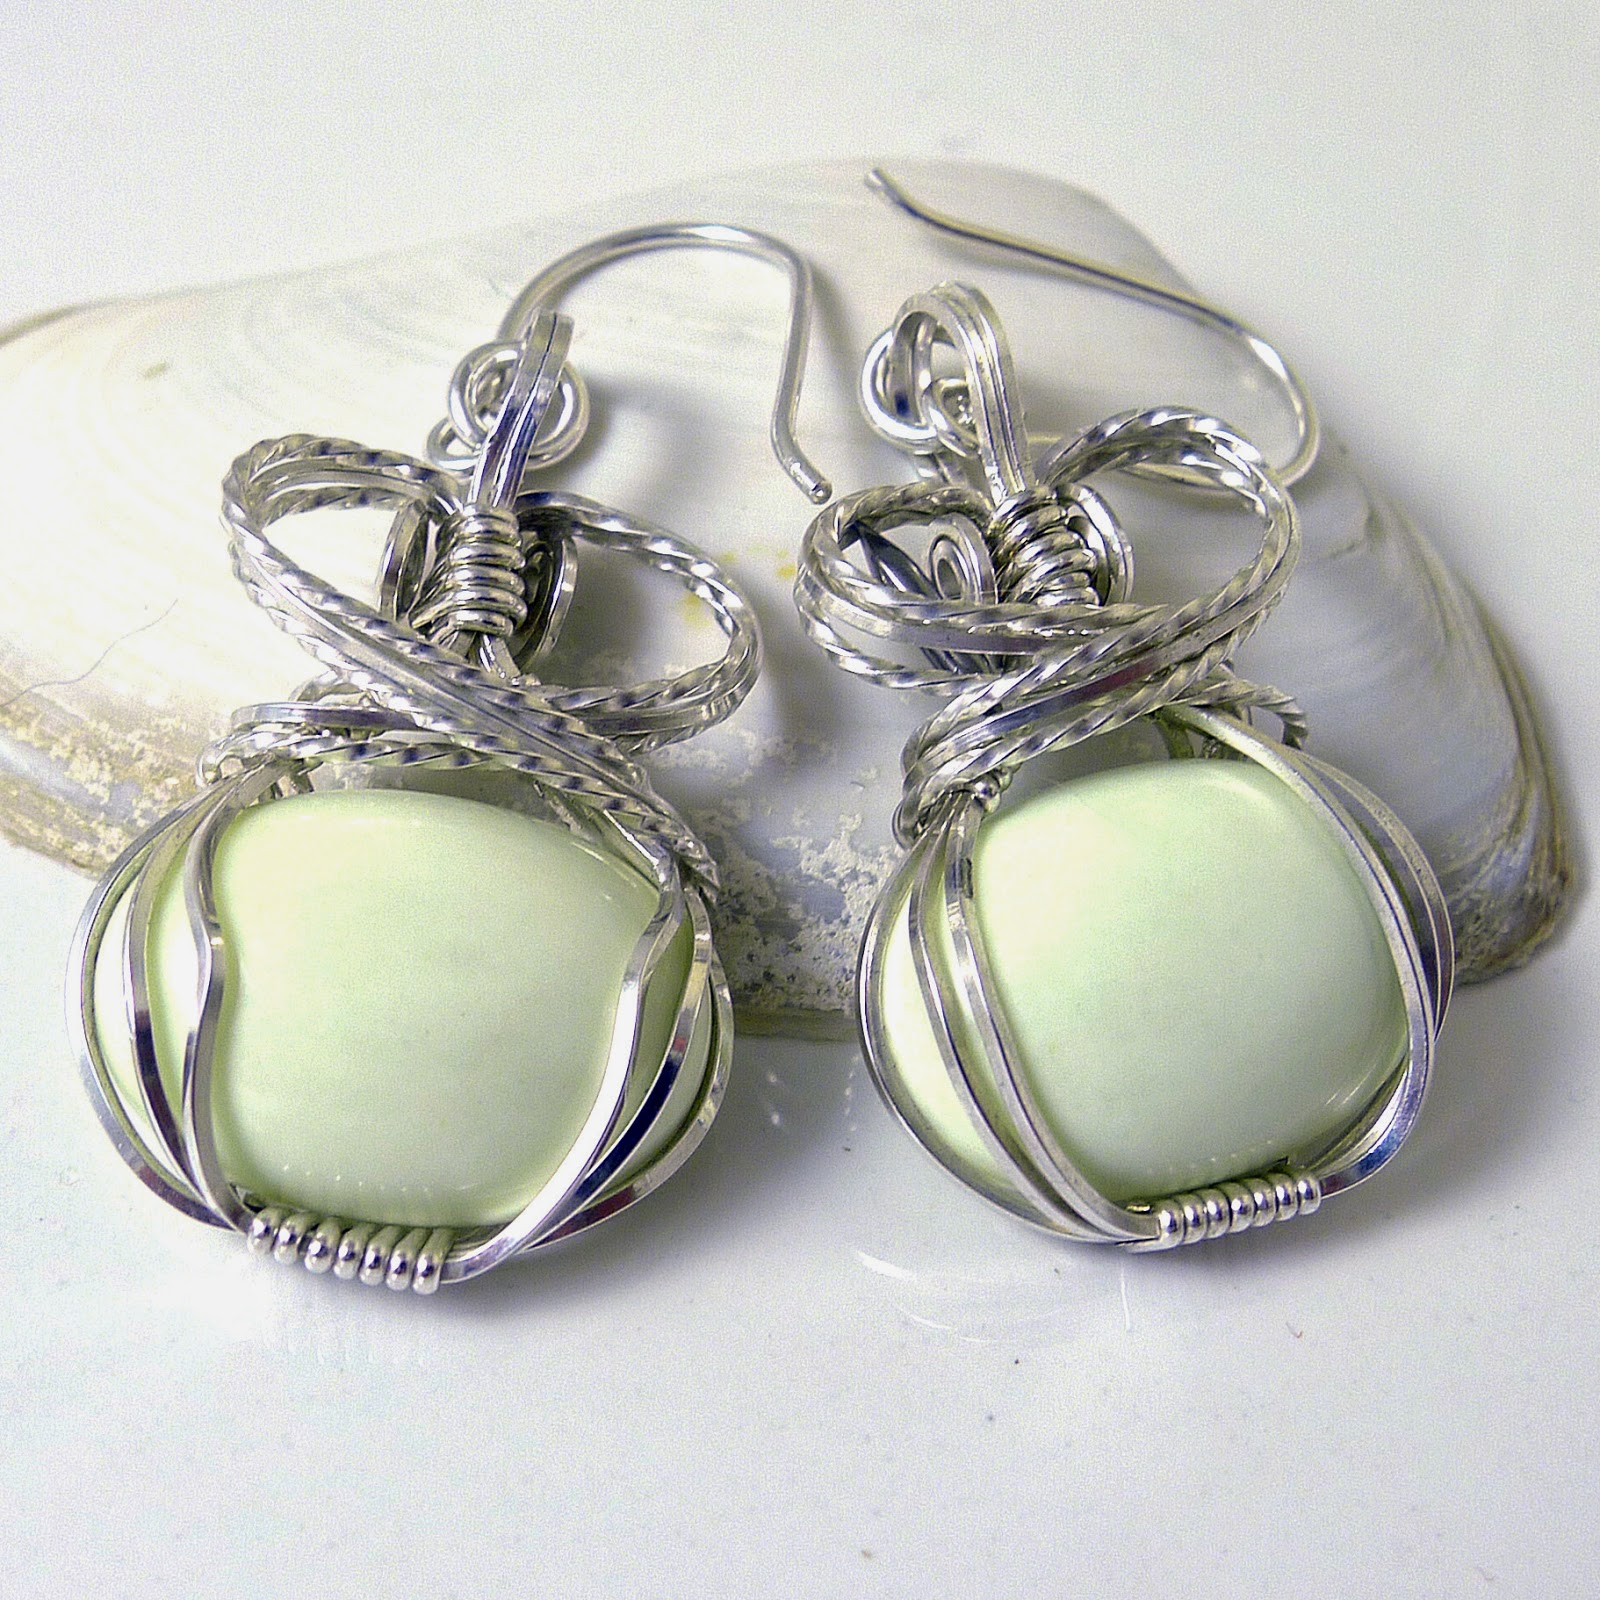 https://www.etsy.com/nz/listing/186583066/lemon-chrysoprase-and-sterling-silver